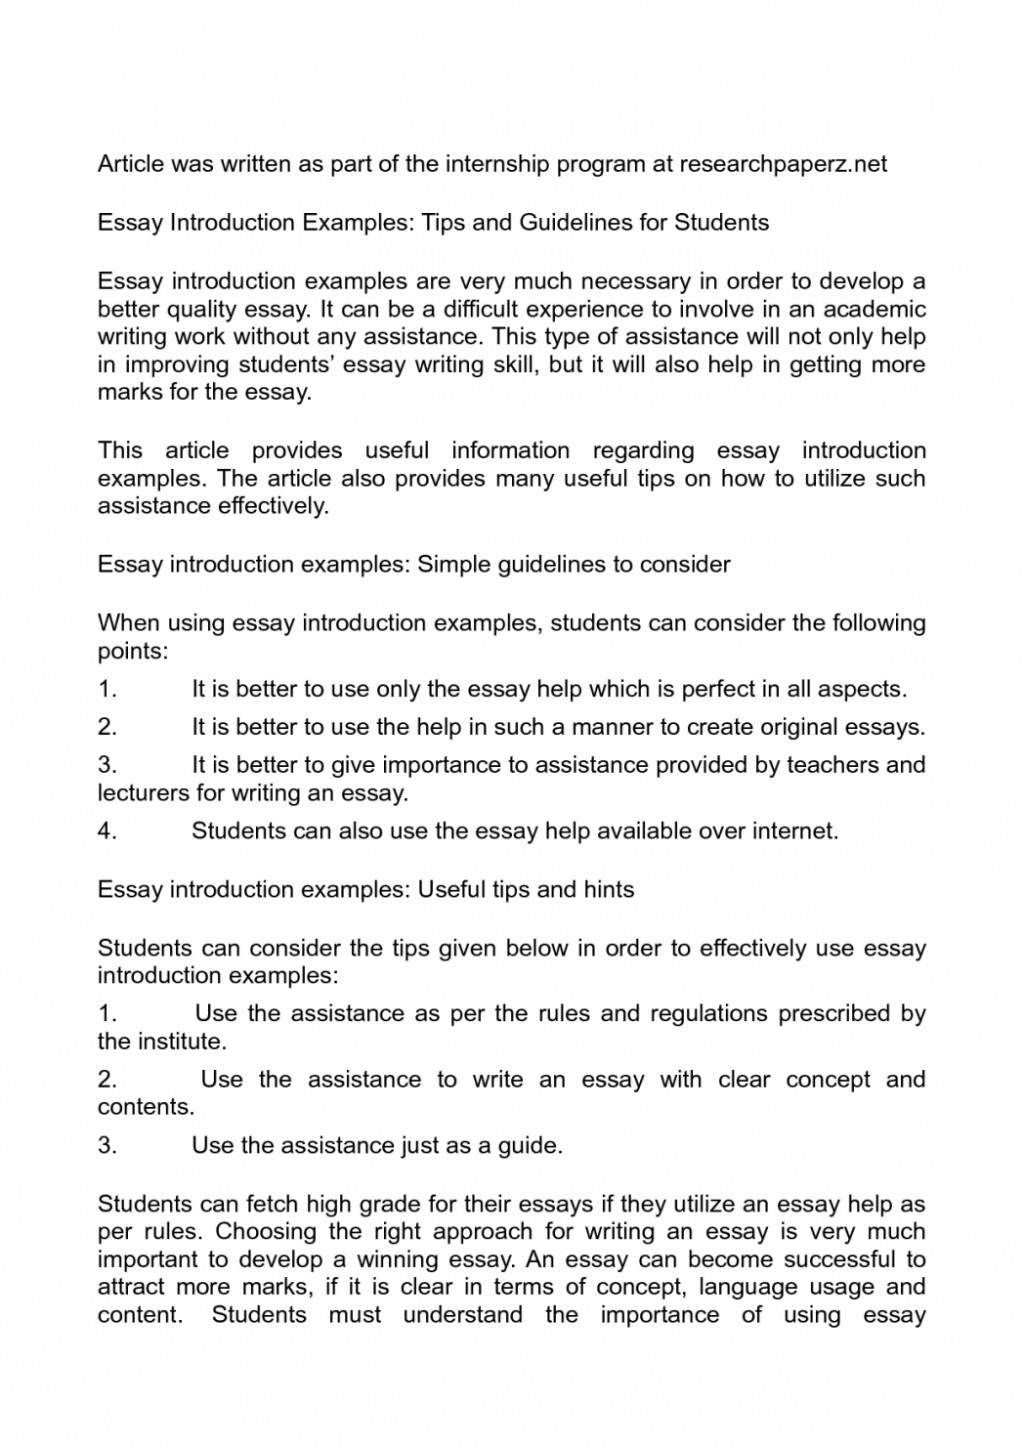 007 Essay Example How To Start Introduction On Good Paragraph An Eyx5t Write University For In Ielts Academic Analytical Argumentative Hook Examples Great Intro 1048x1482 Awesome A Sentence College Large